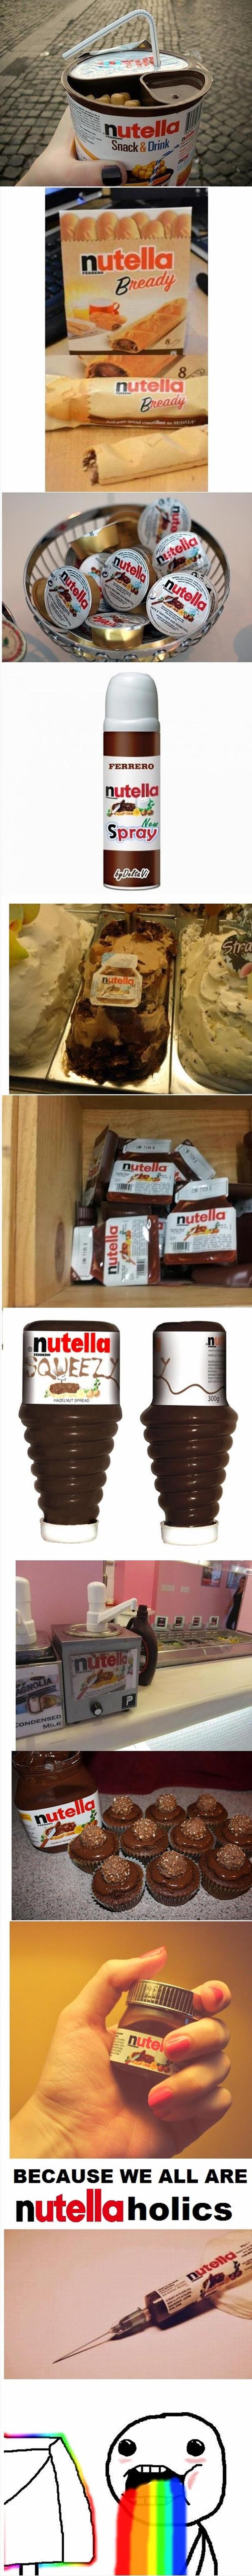 because we are all nutella holics